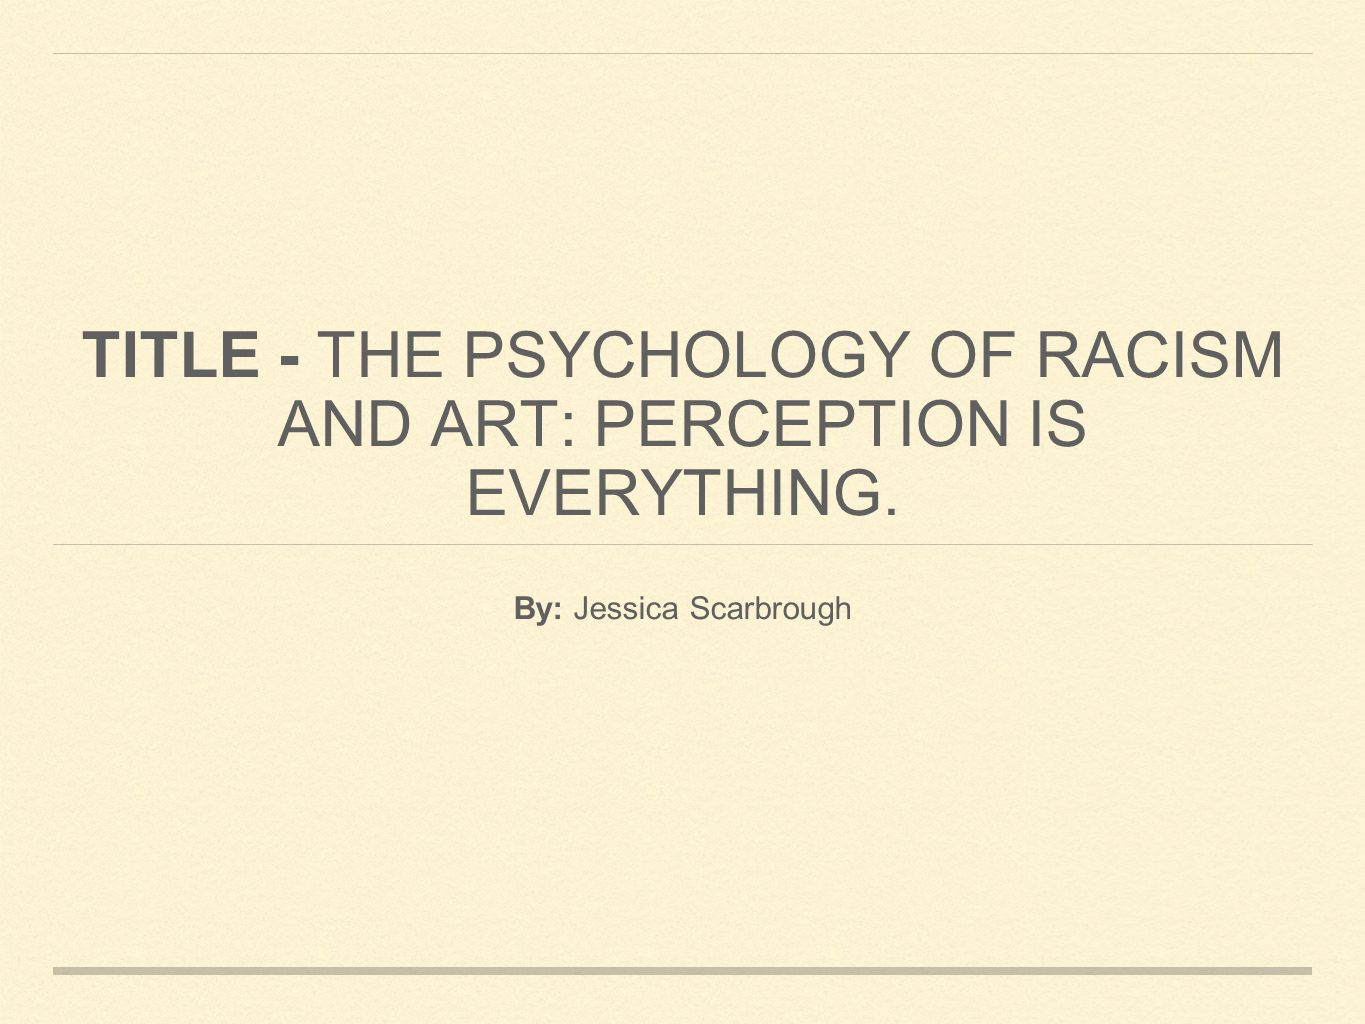 psychology project racism 2+2 = racism social studies science fair project exhibition for kids and also social science working model ideas for cbse, icse, middleschool, elementary school for 5th, 6th, 7th, 8th, 9th, 10th, 12th and high school students.